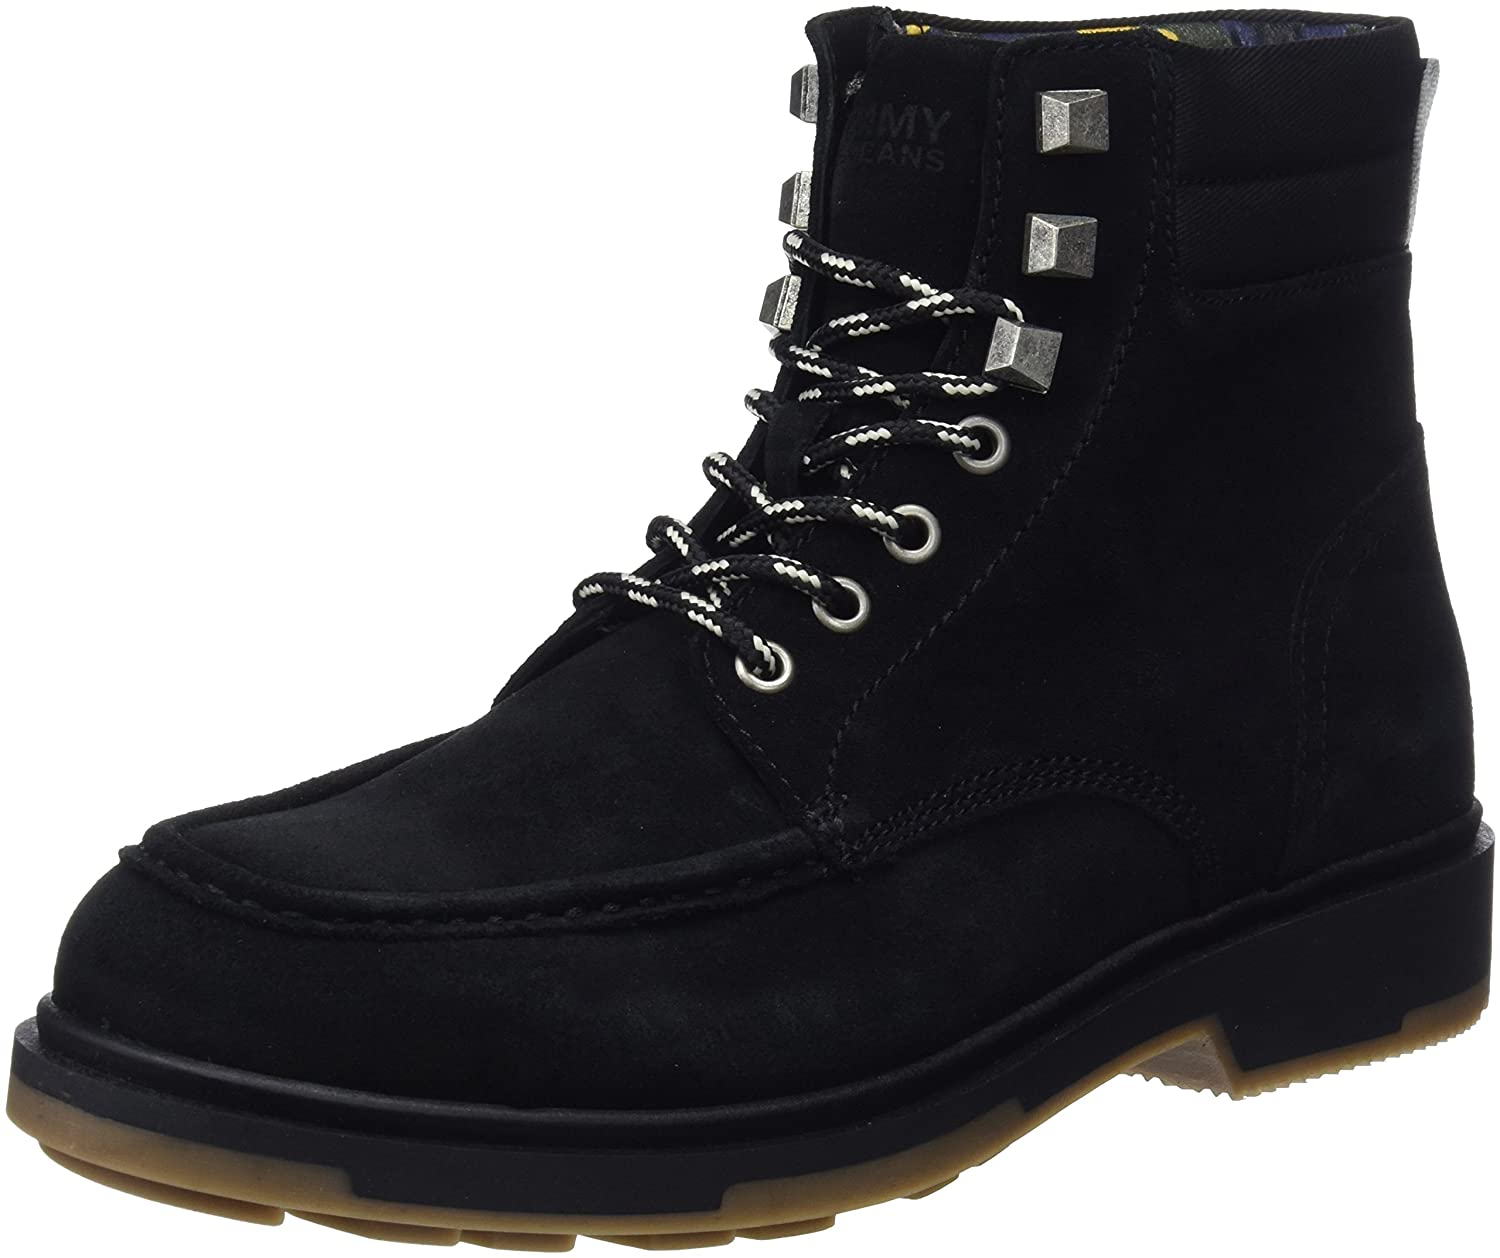 TALLA 44 EU. Tommy Jeans Casual Outdoor Lace Up Boot, Botas Militar para Hombre